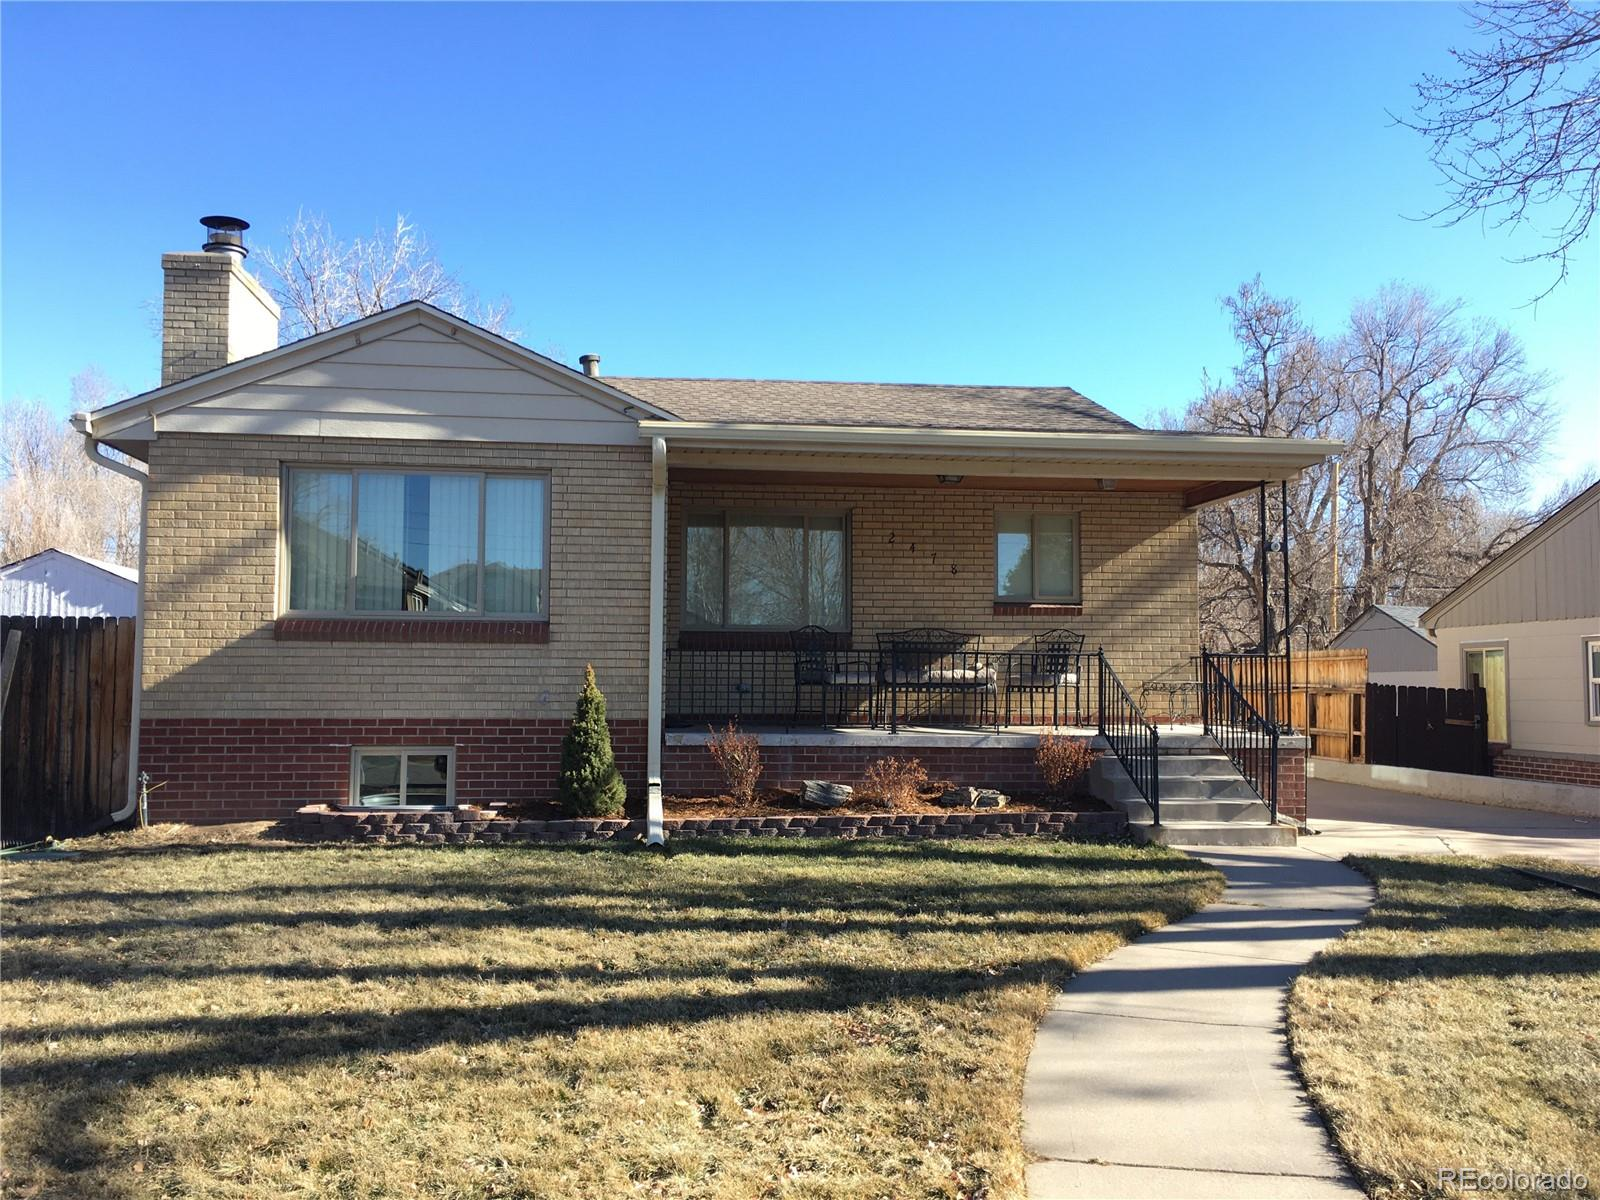 Photo of 2478 S High Street, Denver, CO 80210